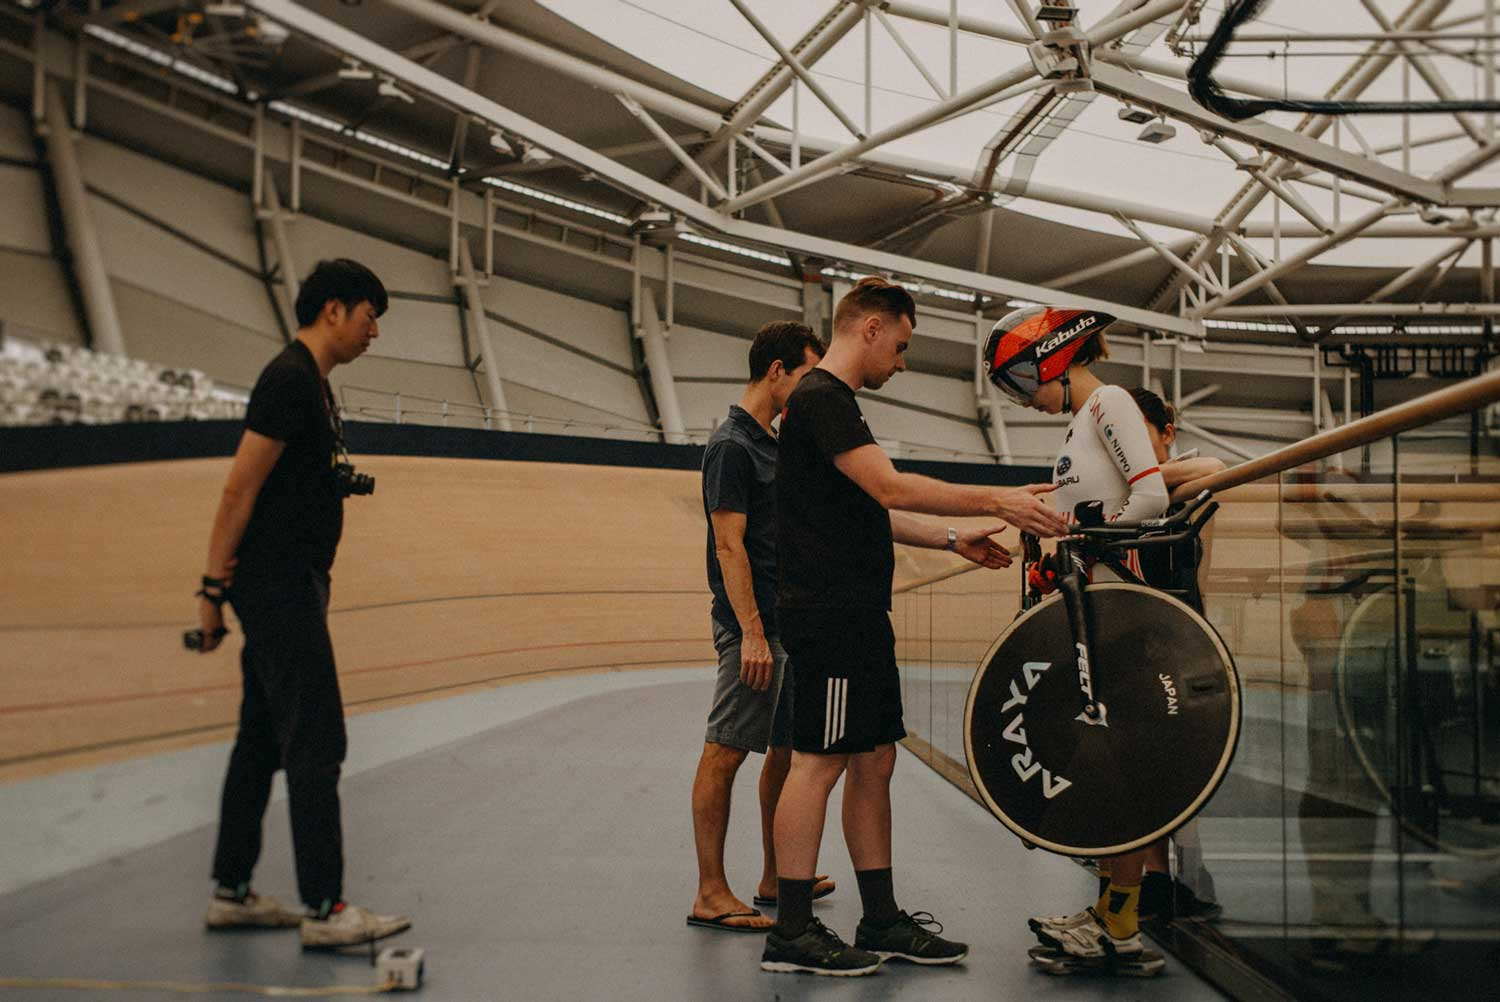 Cycling biomechanists weight track cyclist with bike at the velodrome during training session